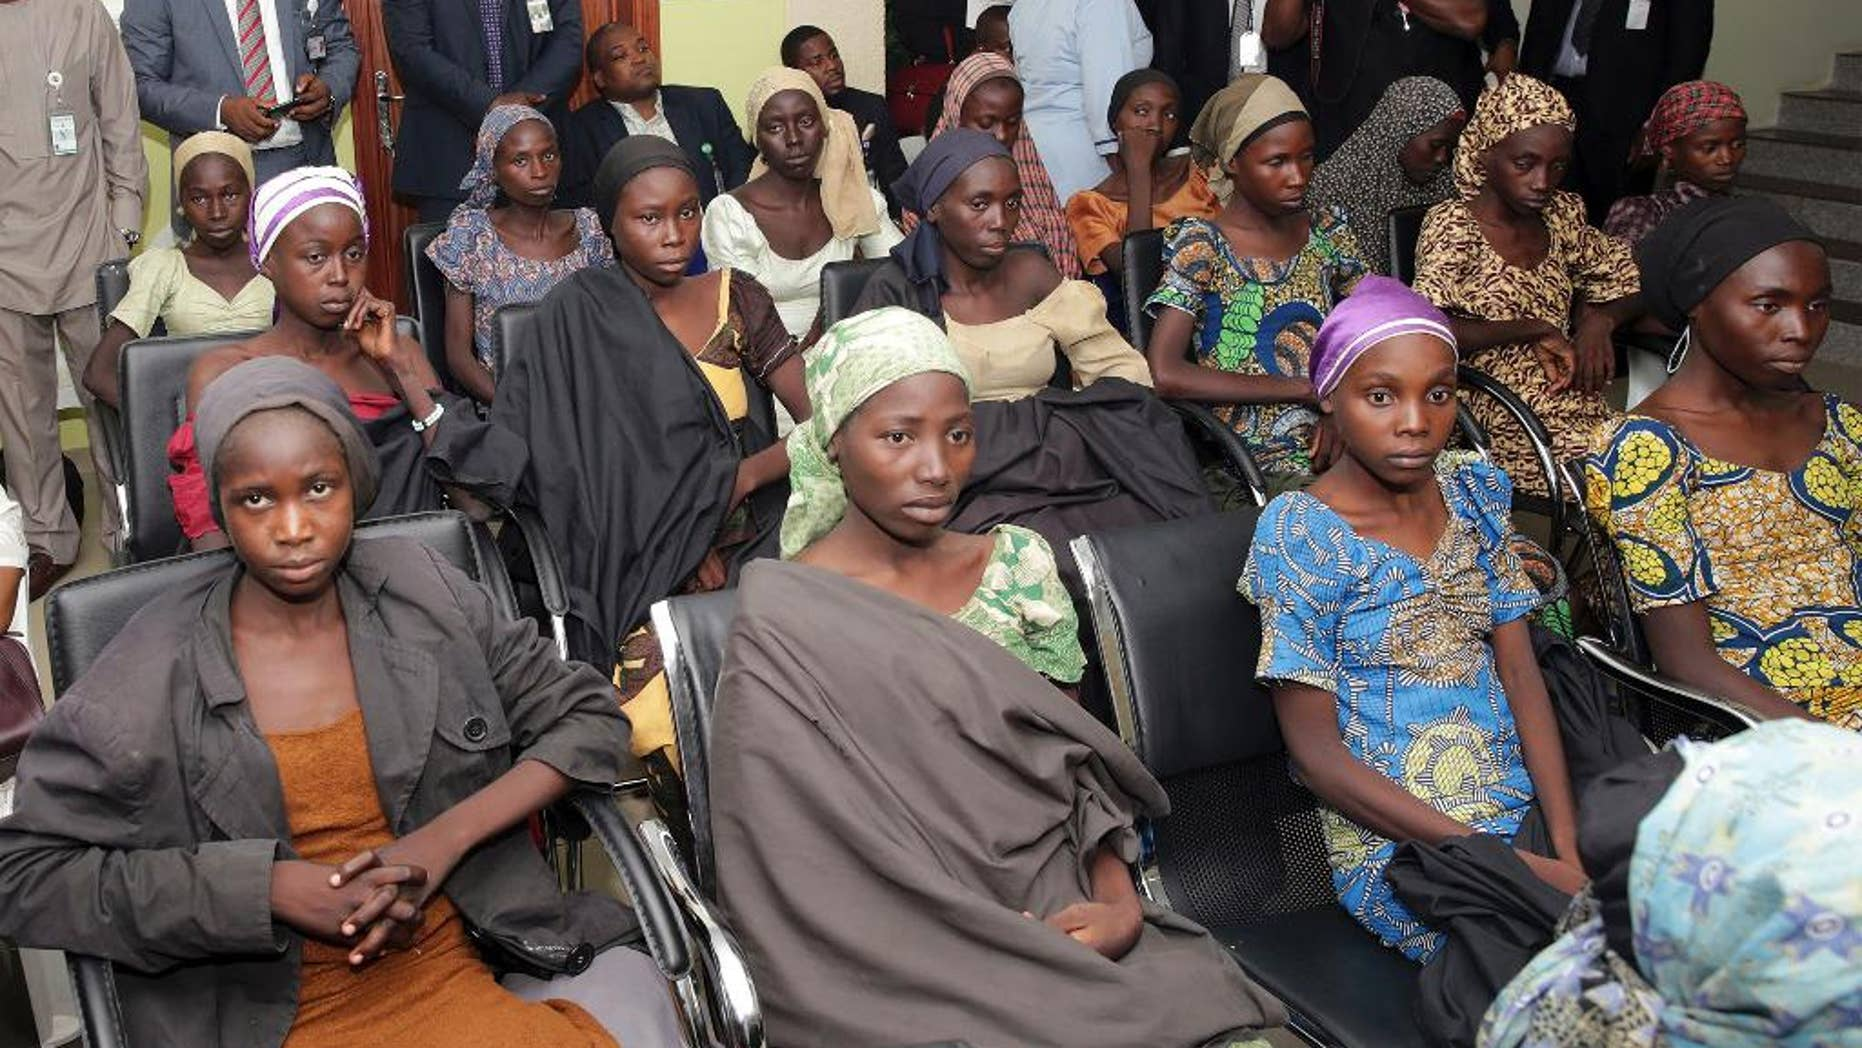 FILE - In this Thursday, Oct. 13, 2016 file photo released by the Nigeria State House, Chibok school girls recently freed from Islamic extremist captivity are seen during a meeting with Nigeria's Vice President Yemi Osinbajo, in Abuja, Nigeria. Nigeria's government must speedily negotiate the release of 195 kidnapped Chibok schoolgirls held by Boko Haram Islamic extremists for nearly three years, the Bring Back Our Girls group said Tuesday April 4, 2017. (Sunday Aghaeze/Nigeria State House via AP, File)